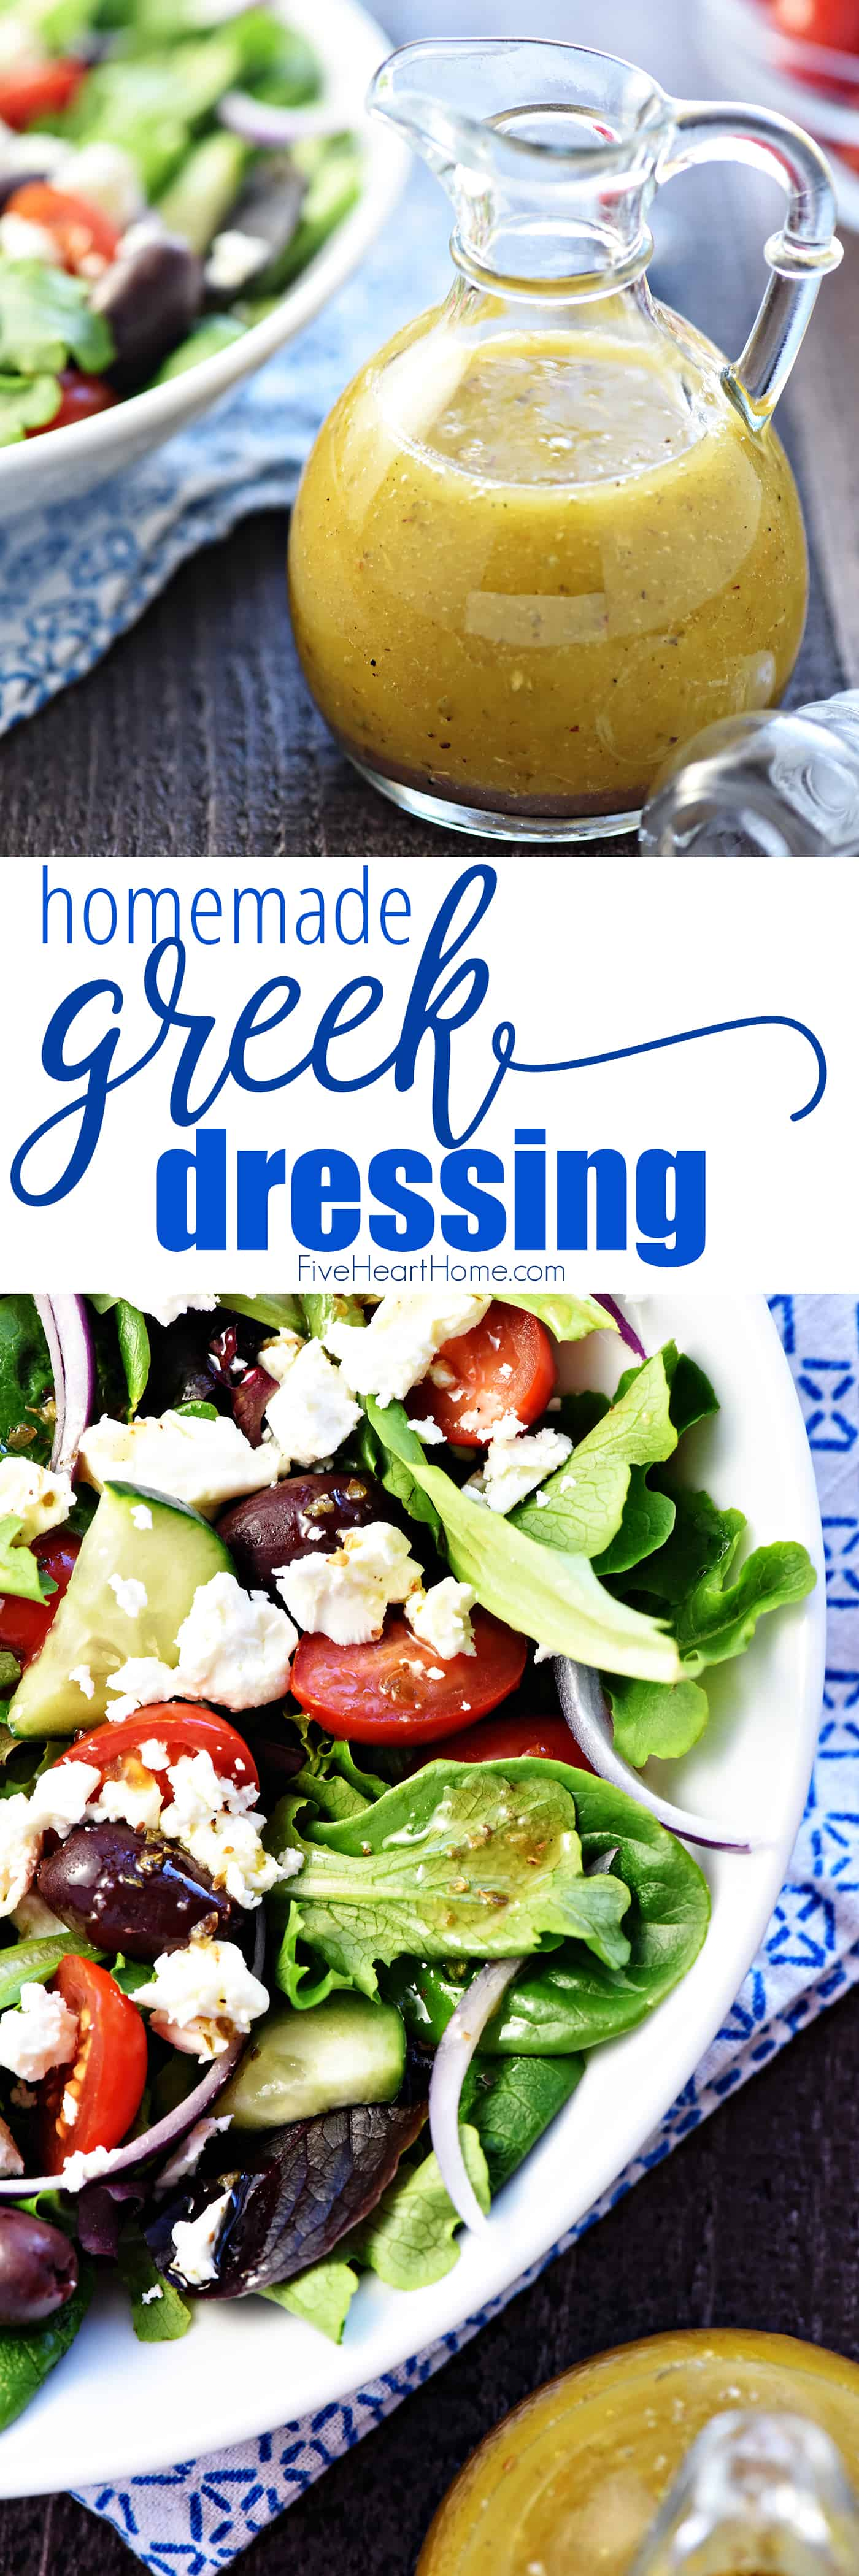 Homemade Greek Salad Dressing ~ tangy, easy to make, and delicious drizzled over a Greek salad with tomatoes, cucumbers, Kalamata olives, onions, and Feta! | FiveHeartHome.com via @fivehearthome